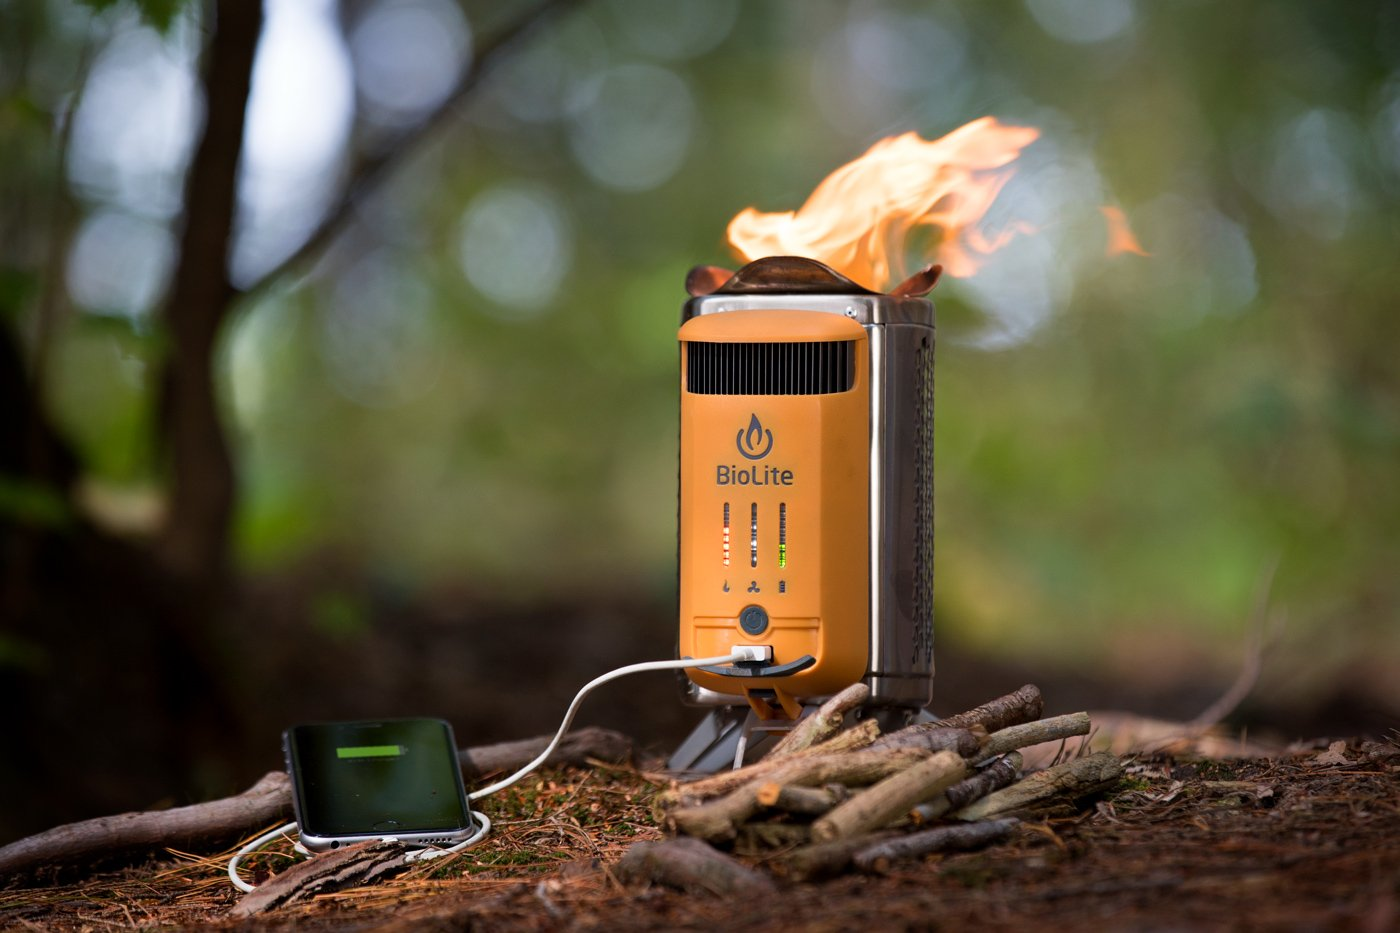 BioLite Stove Review